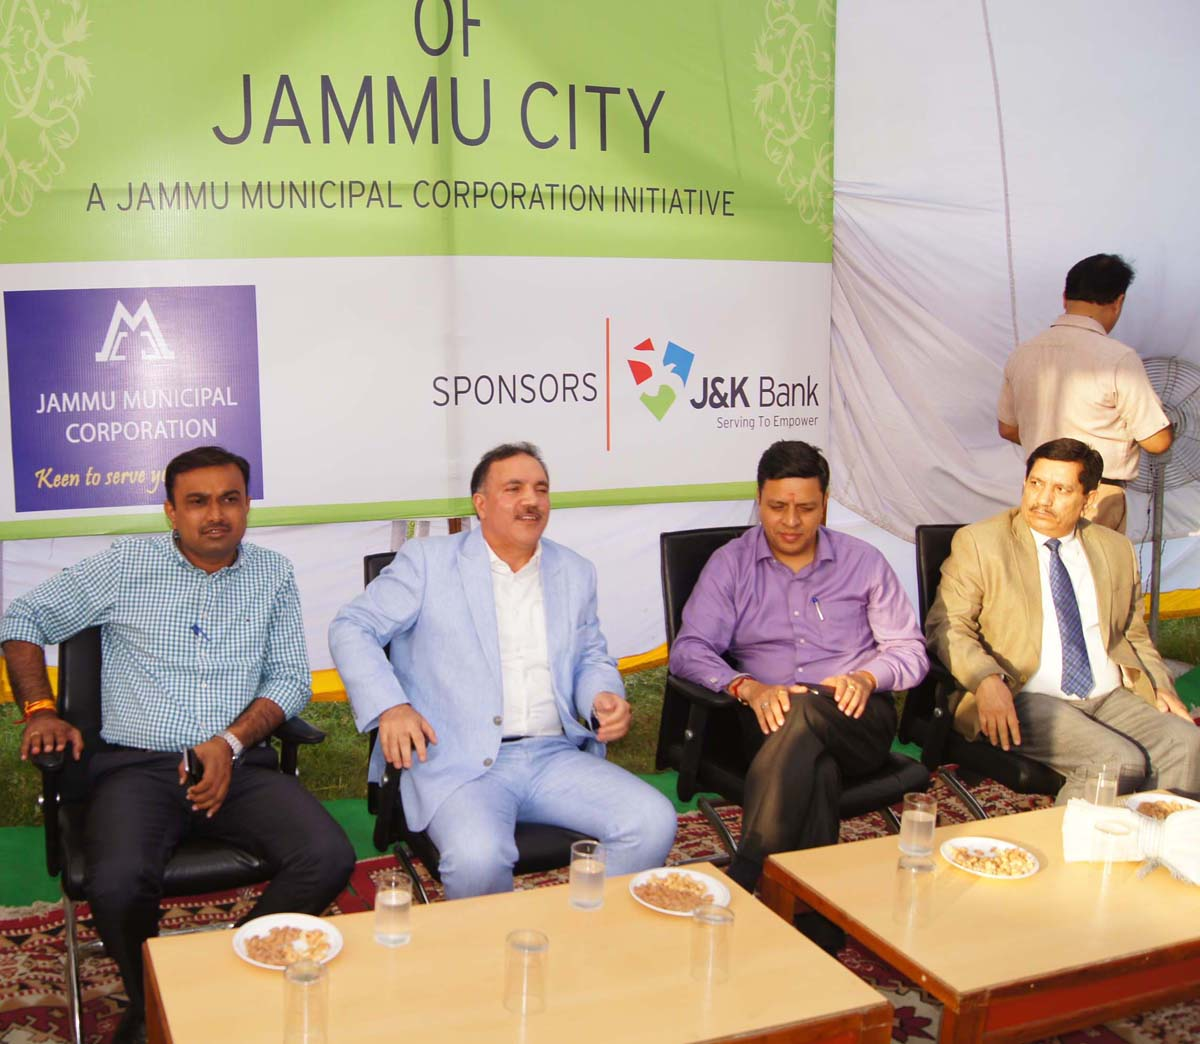 Divisional Commissioner Sanjeev Verma, Chairman-cum-CEO J&K Bank Parvaiz Ahmed and others during launch of beautification drive at Jammu on Wednesday.